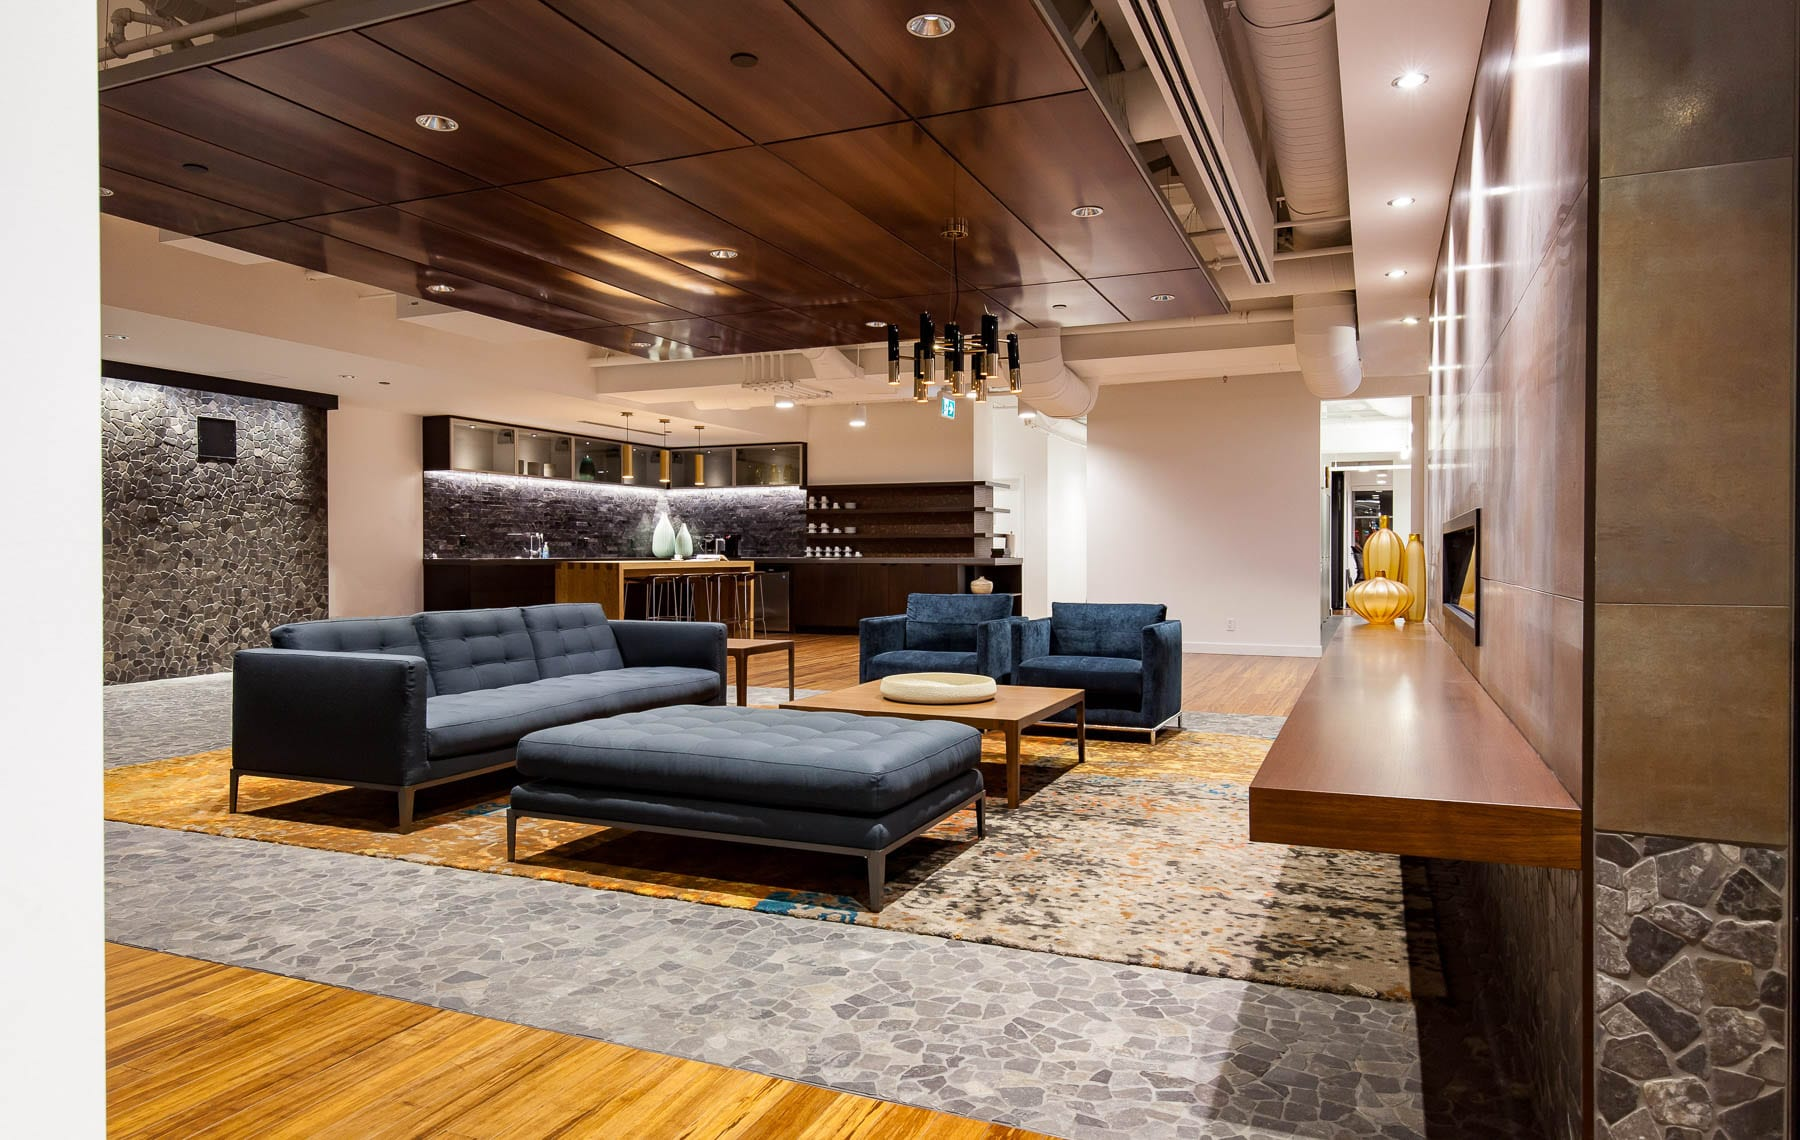 Contemporary Office Design at MIABC - living room style lounge